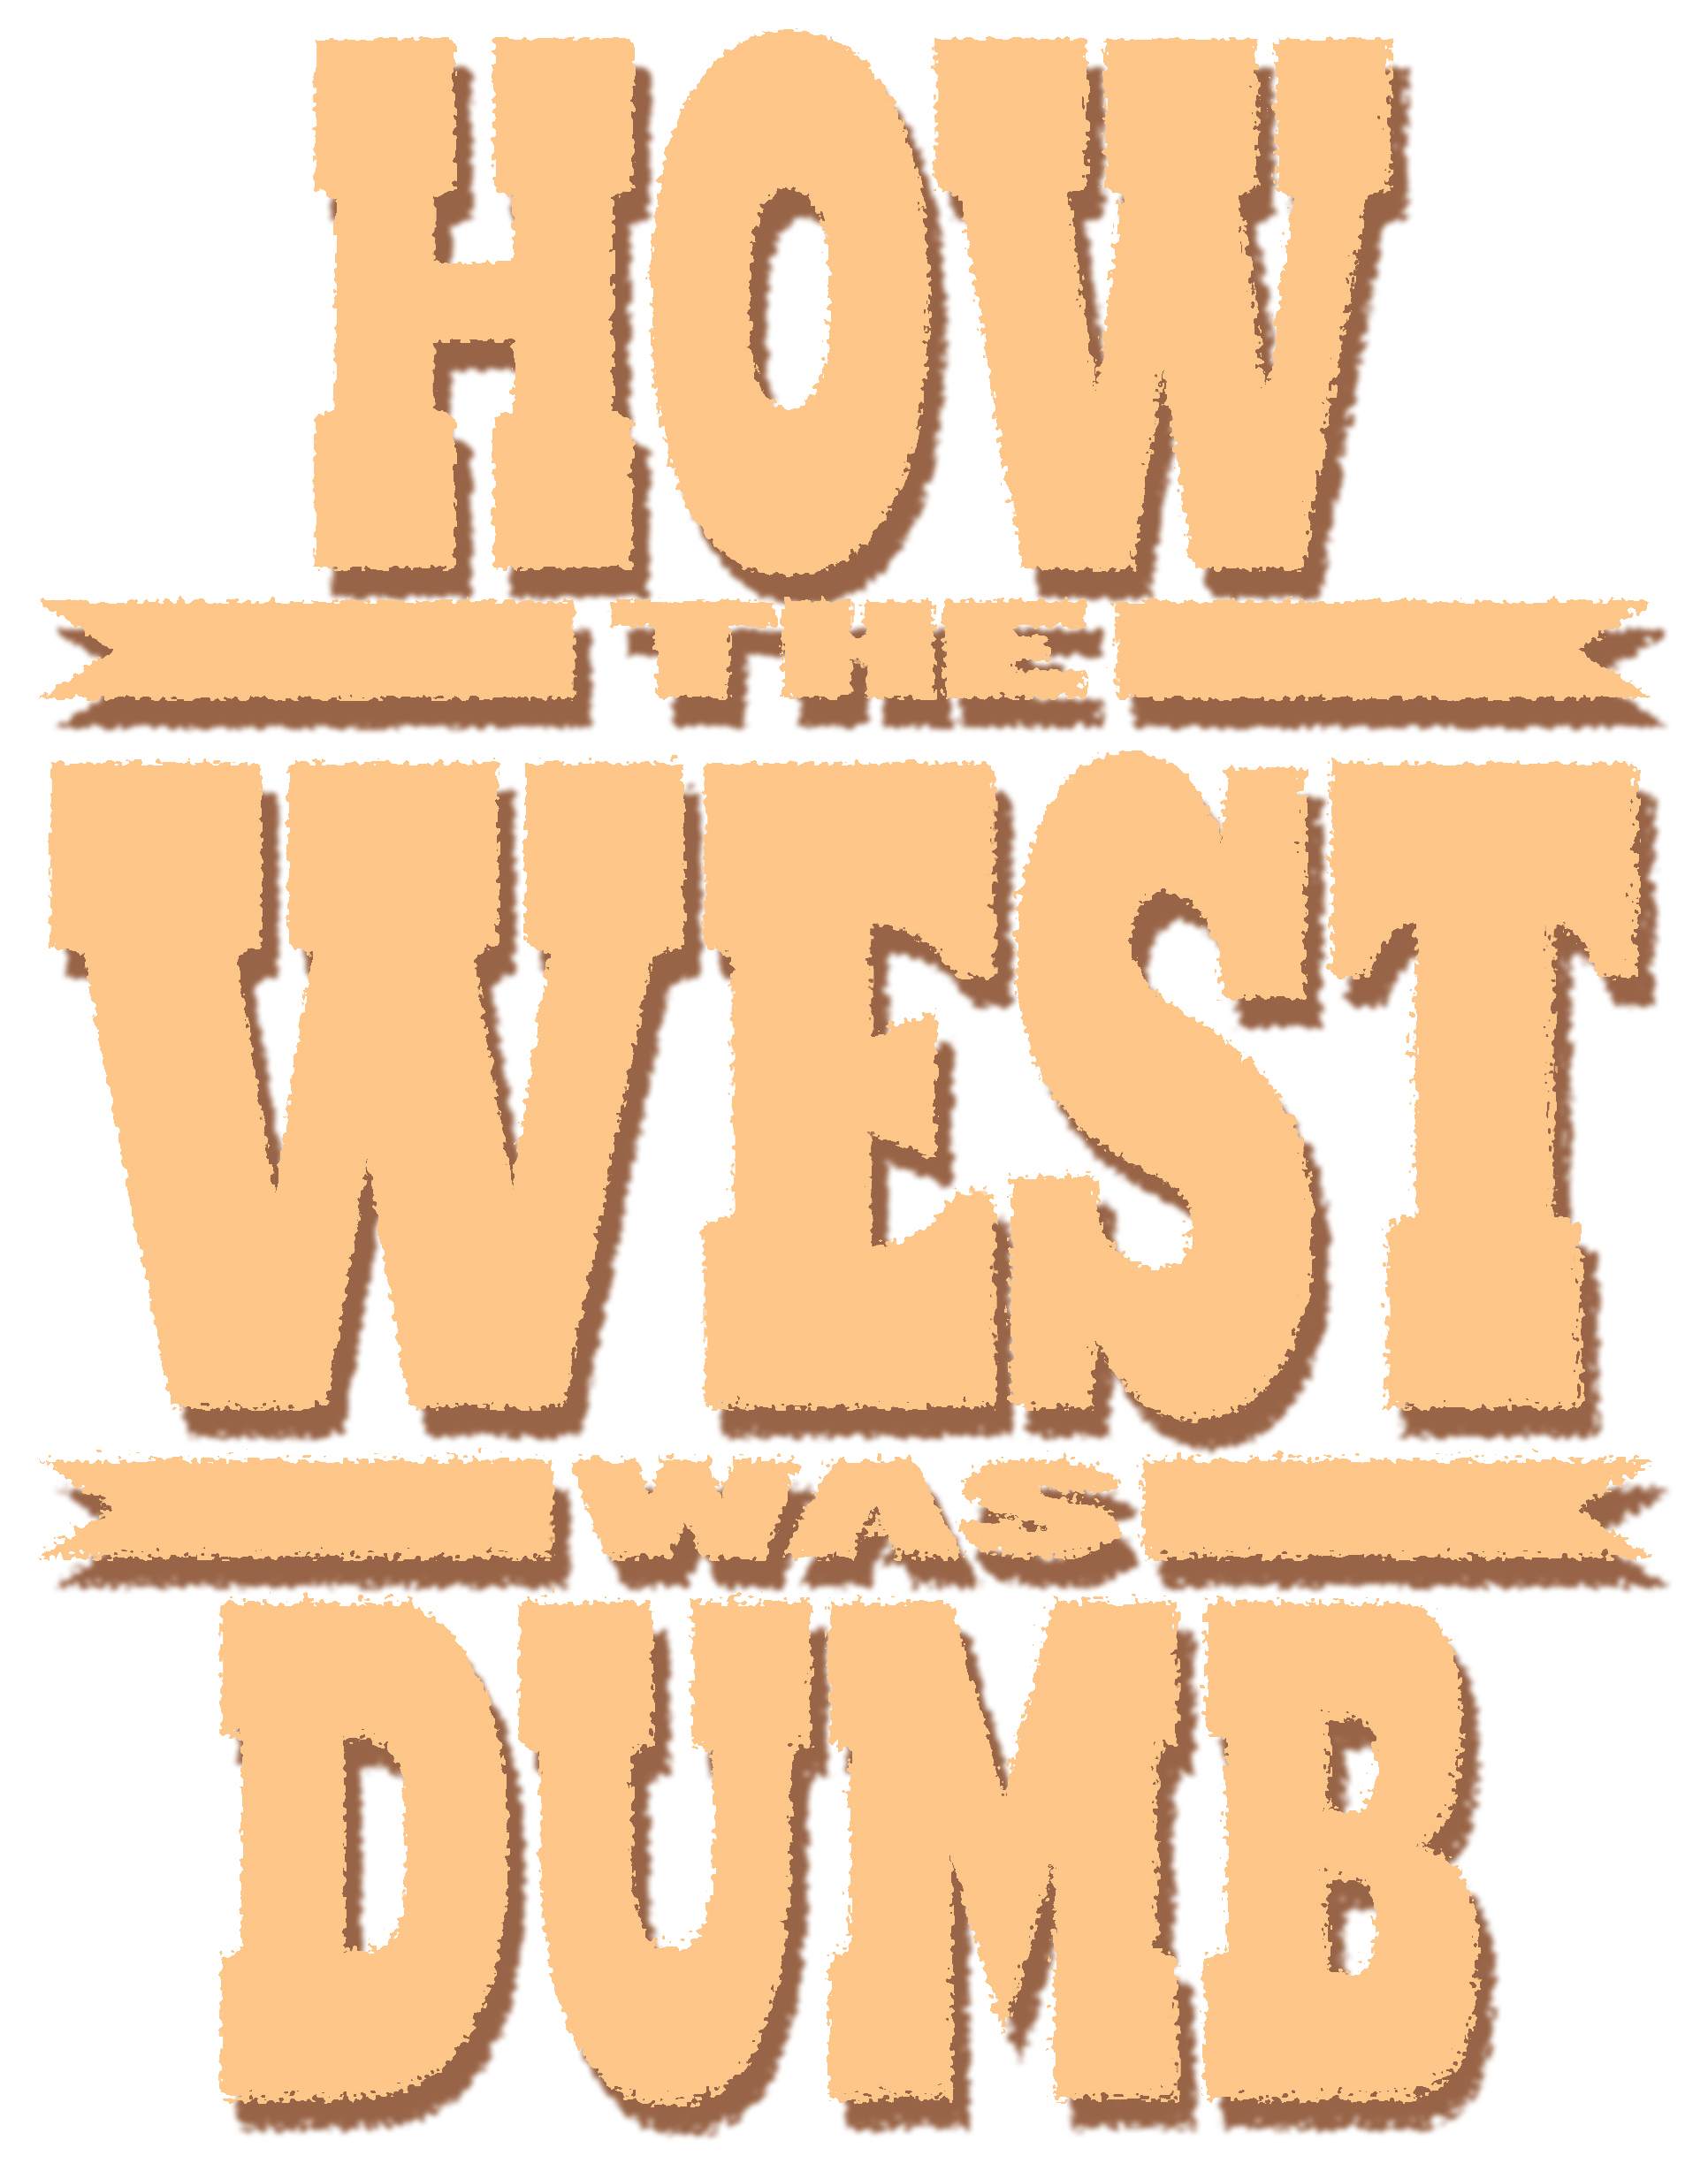 How the West Was Dumb